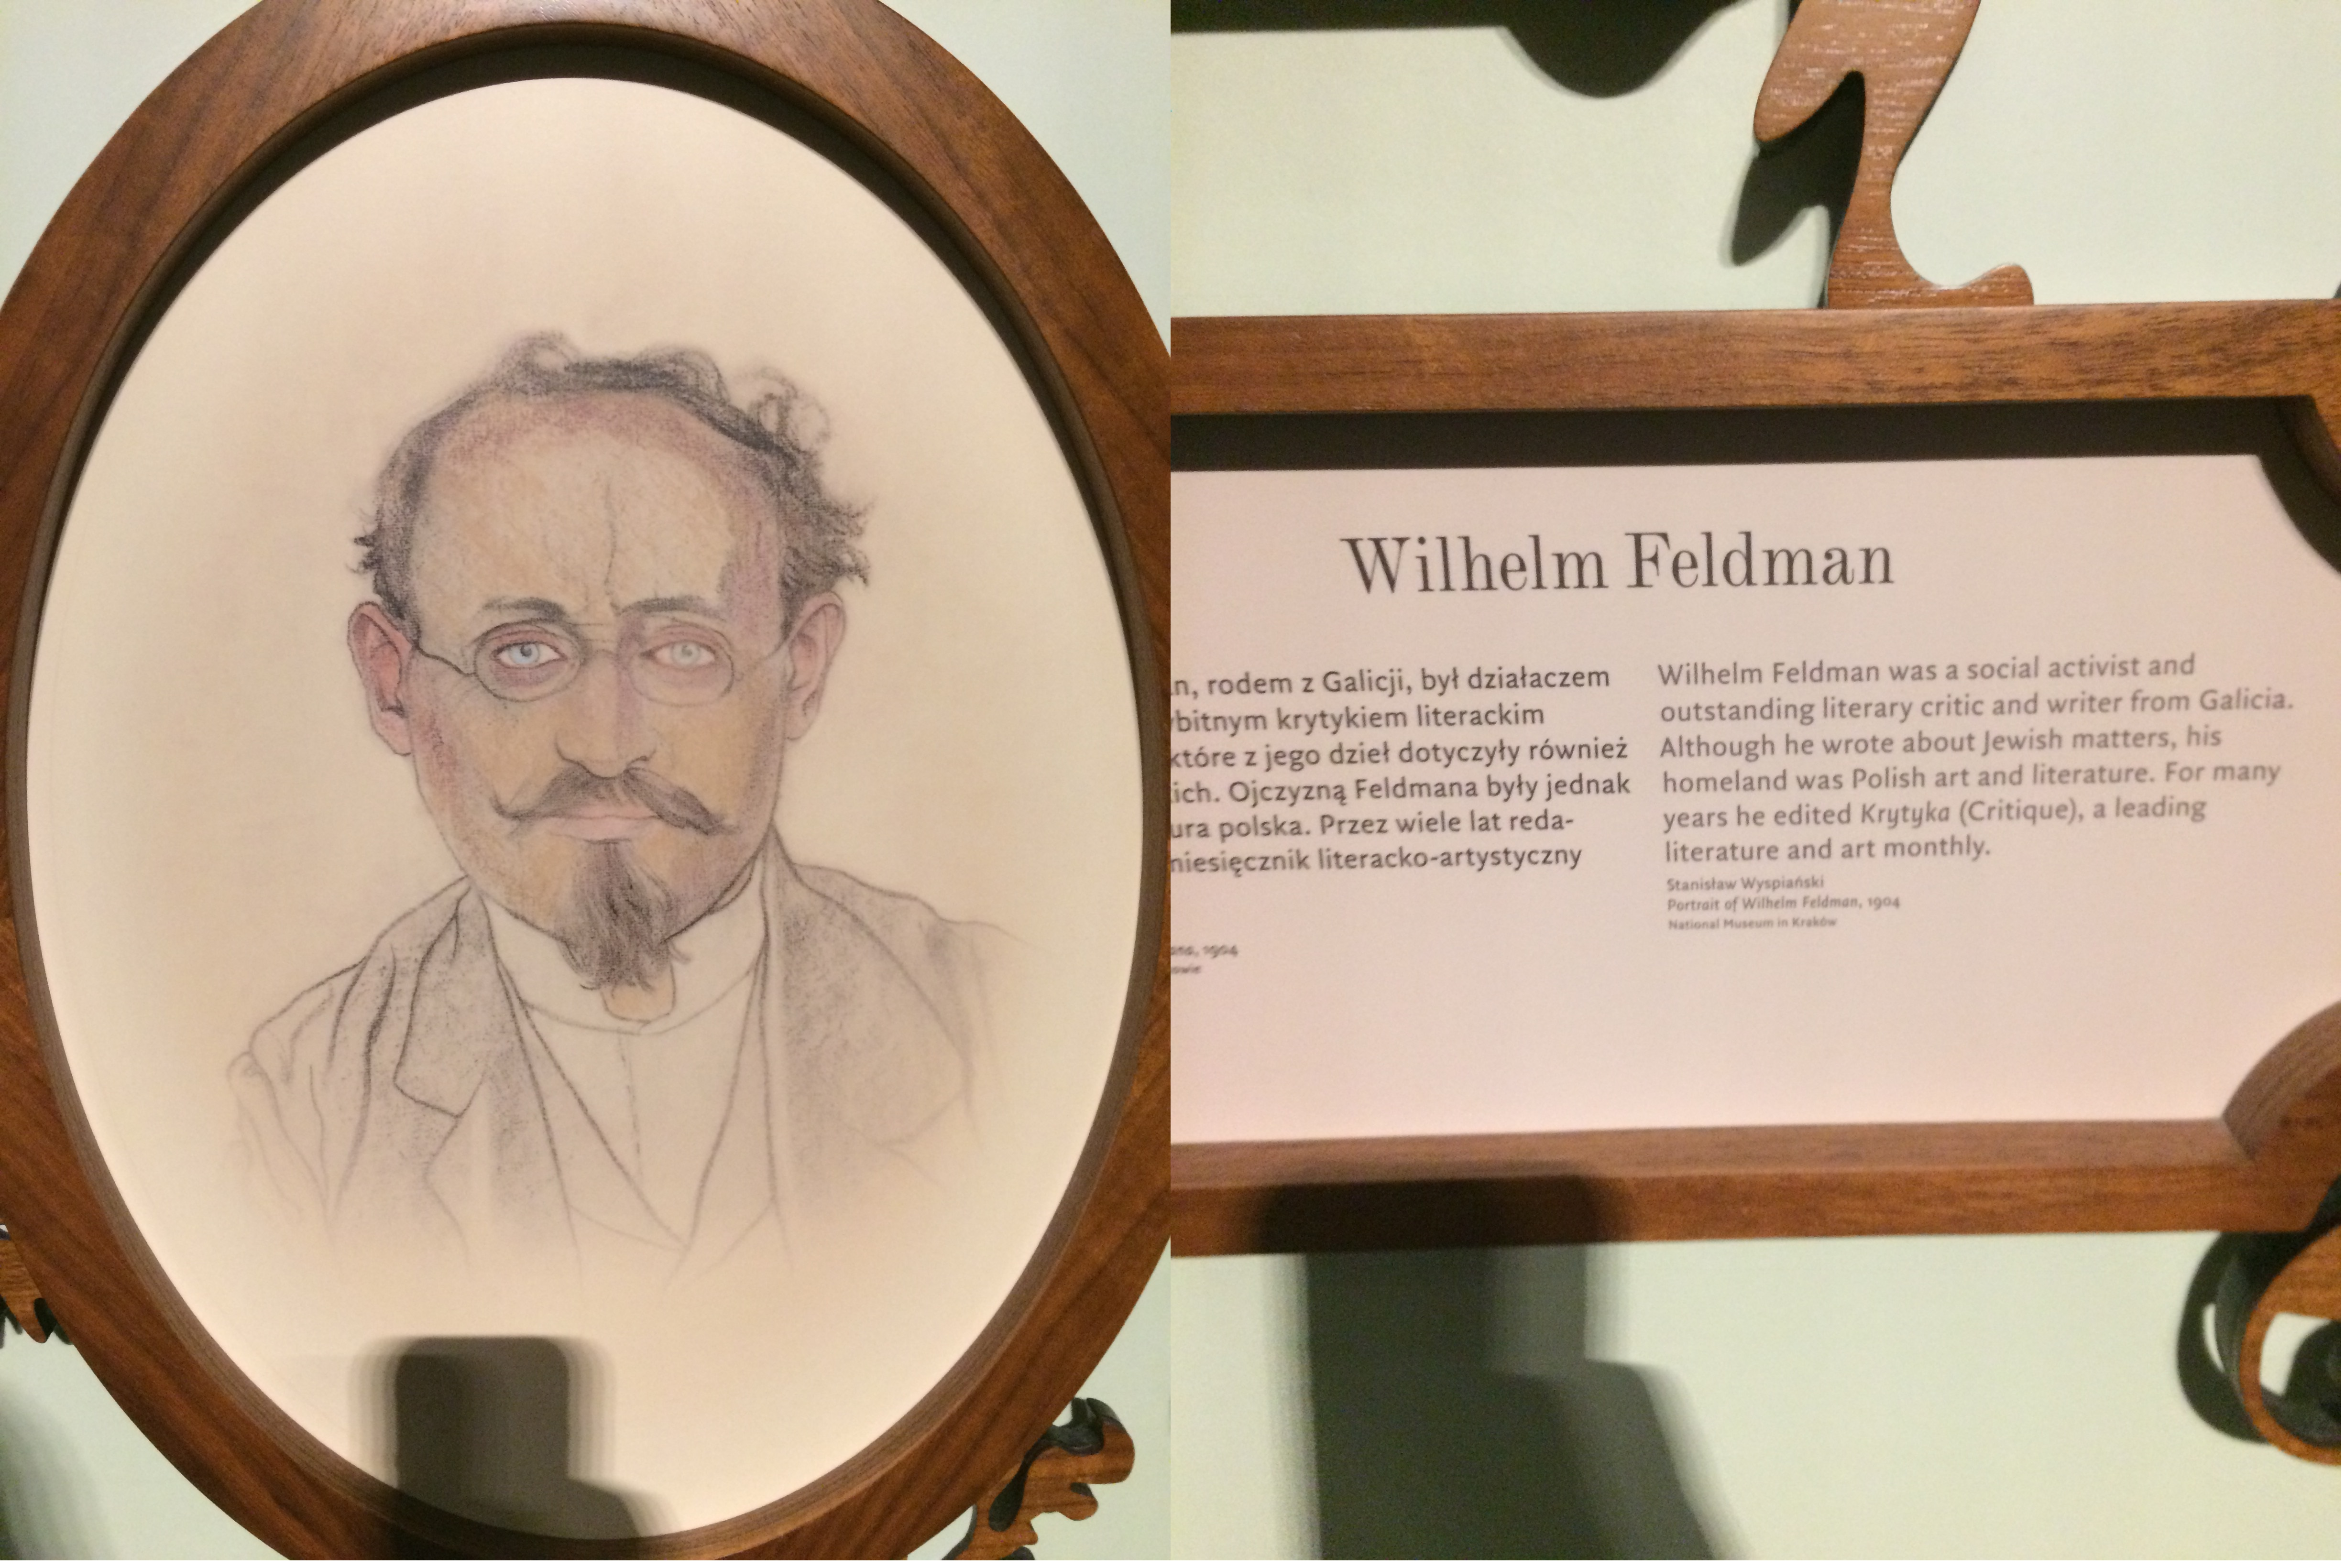 Wilhelm Feldman, picture taken from the Polish Museum, Poland